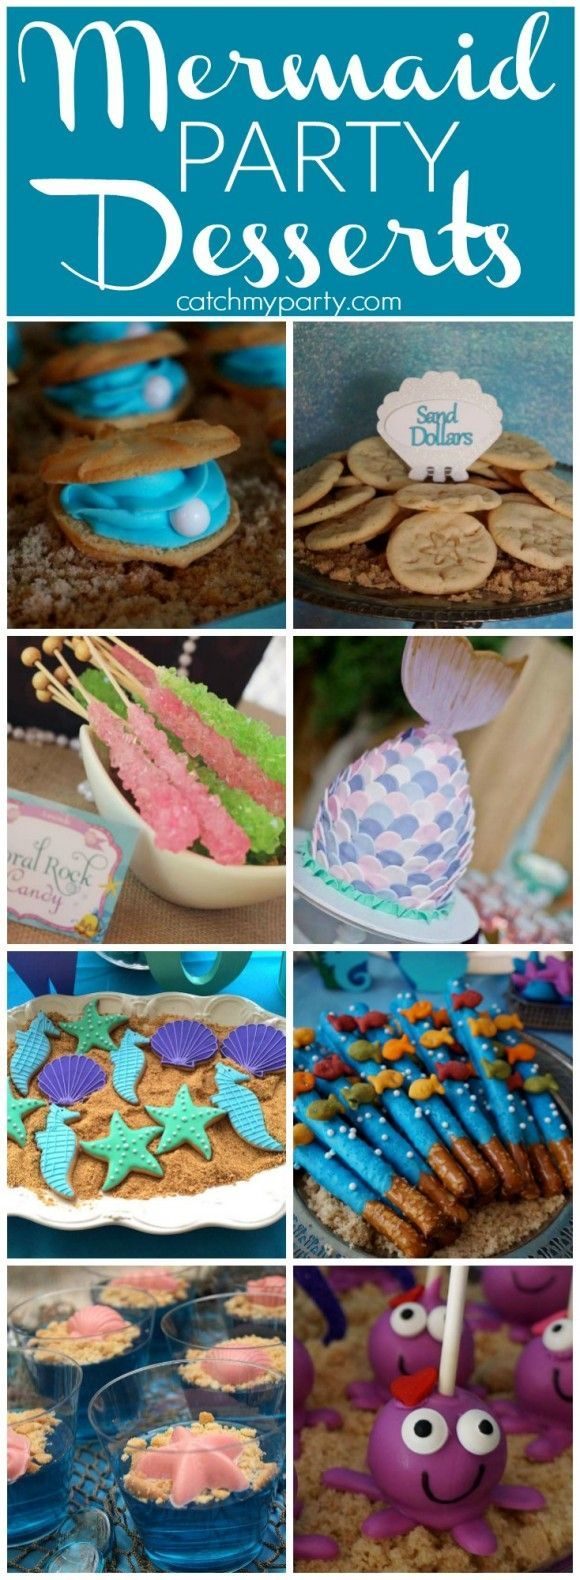 Mermaid Party Desserts to give you ideas for your mermaid and under the sea birthday parties!   CatchMyParty.com